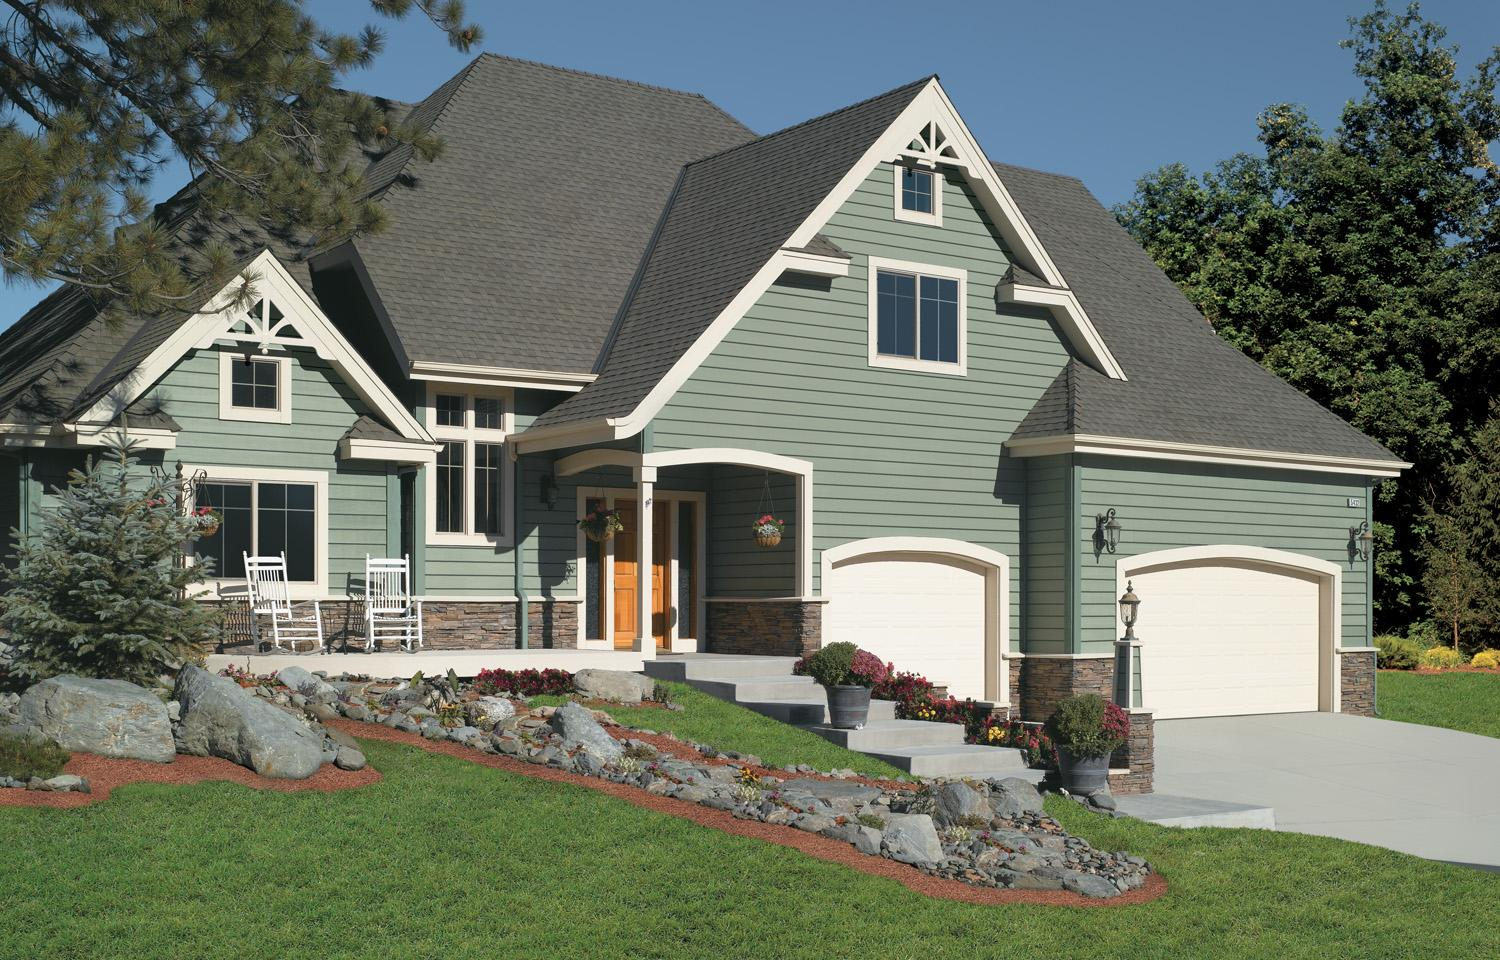 4 types of fiber cement siding for your home pros and cons for Types of wood siding for houses